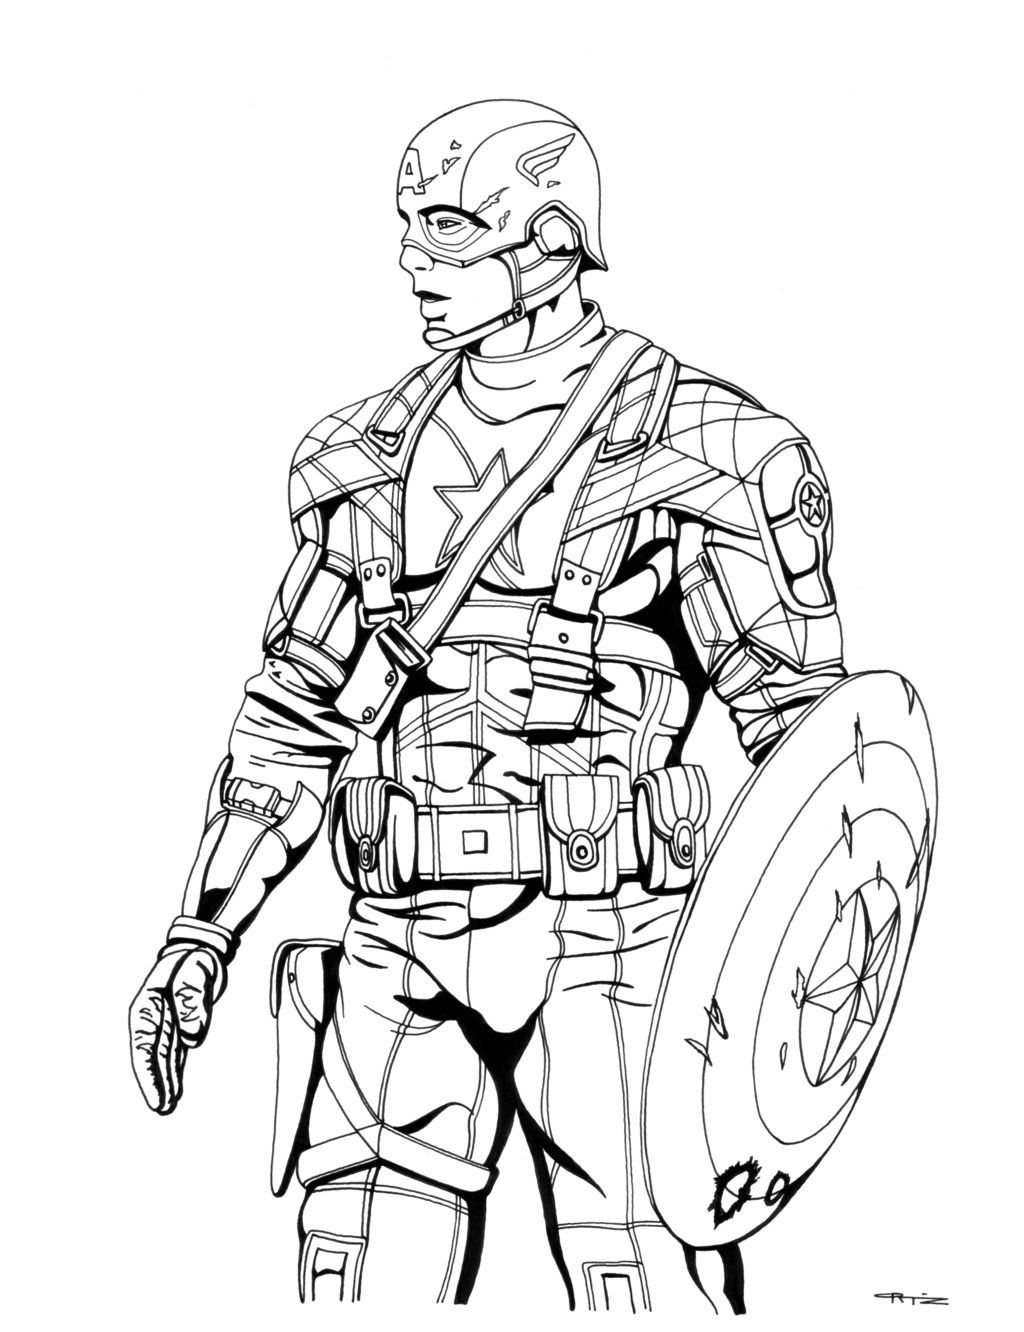 Captain America Fighting Bad Guy Coloring Pages